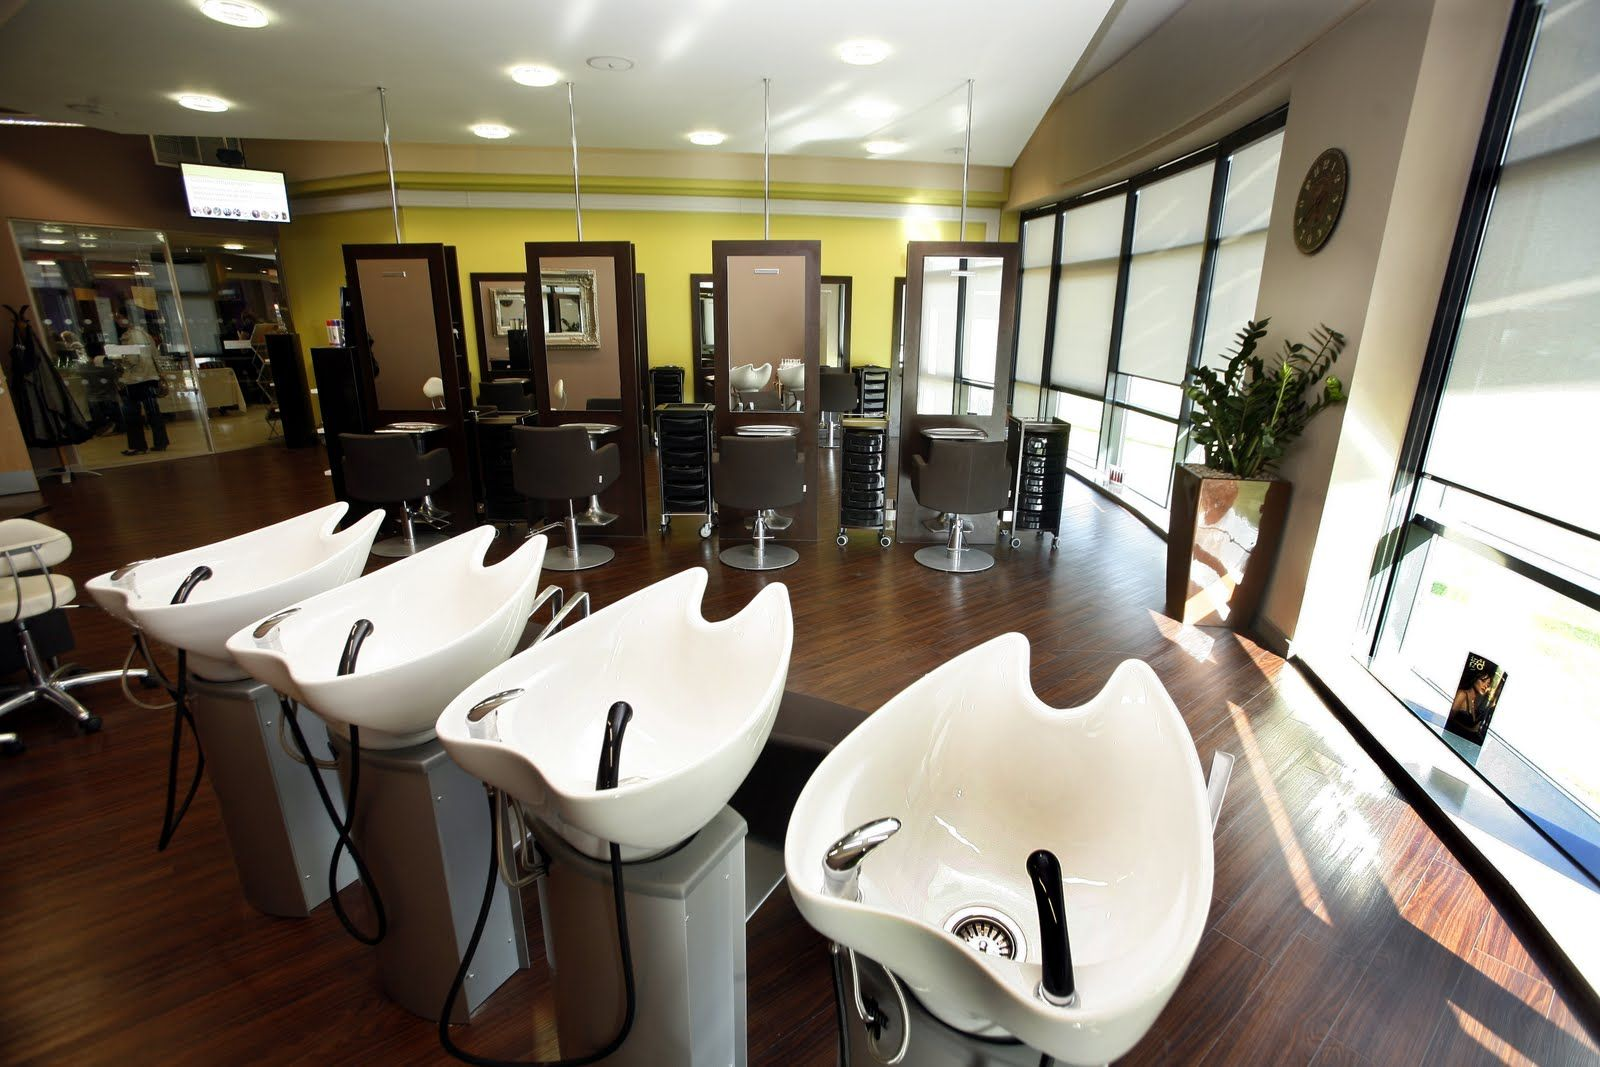 hair salon decorating ideas resourcedir home directory - Hair Salon Design Ideas